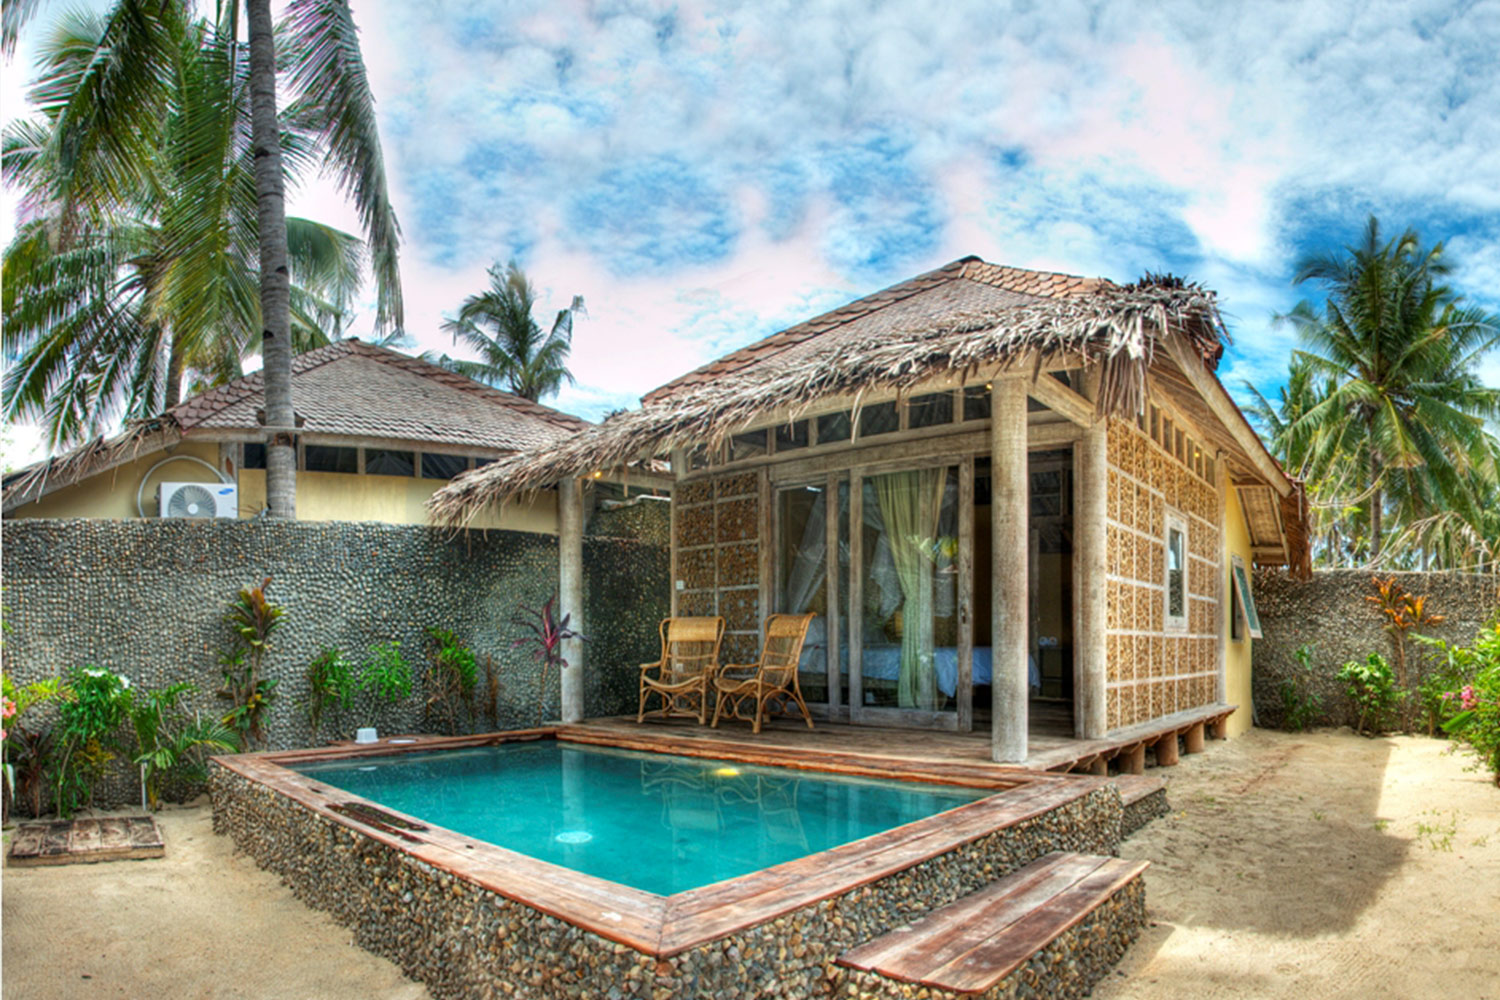 luxury Villa hotel in Gili